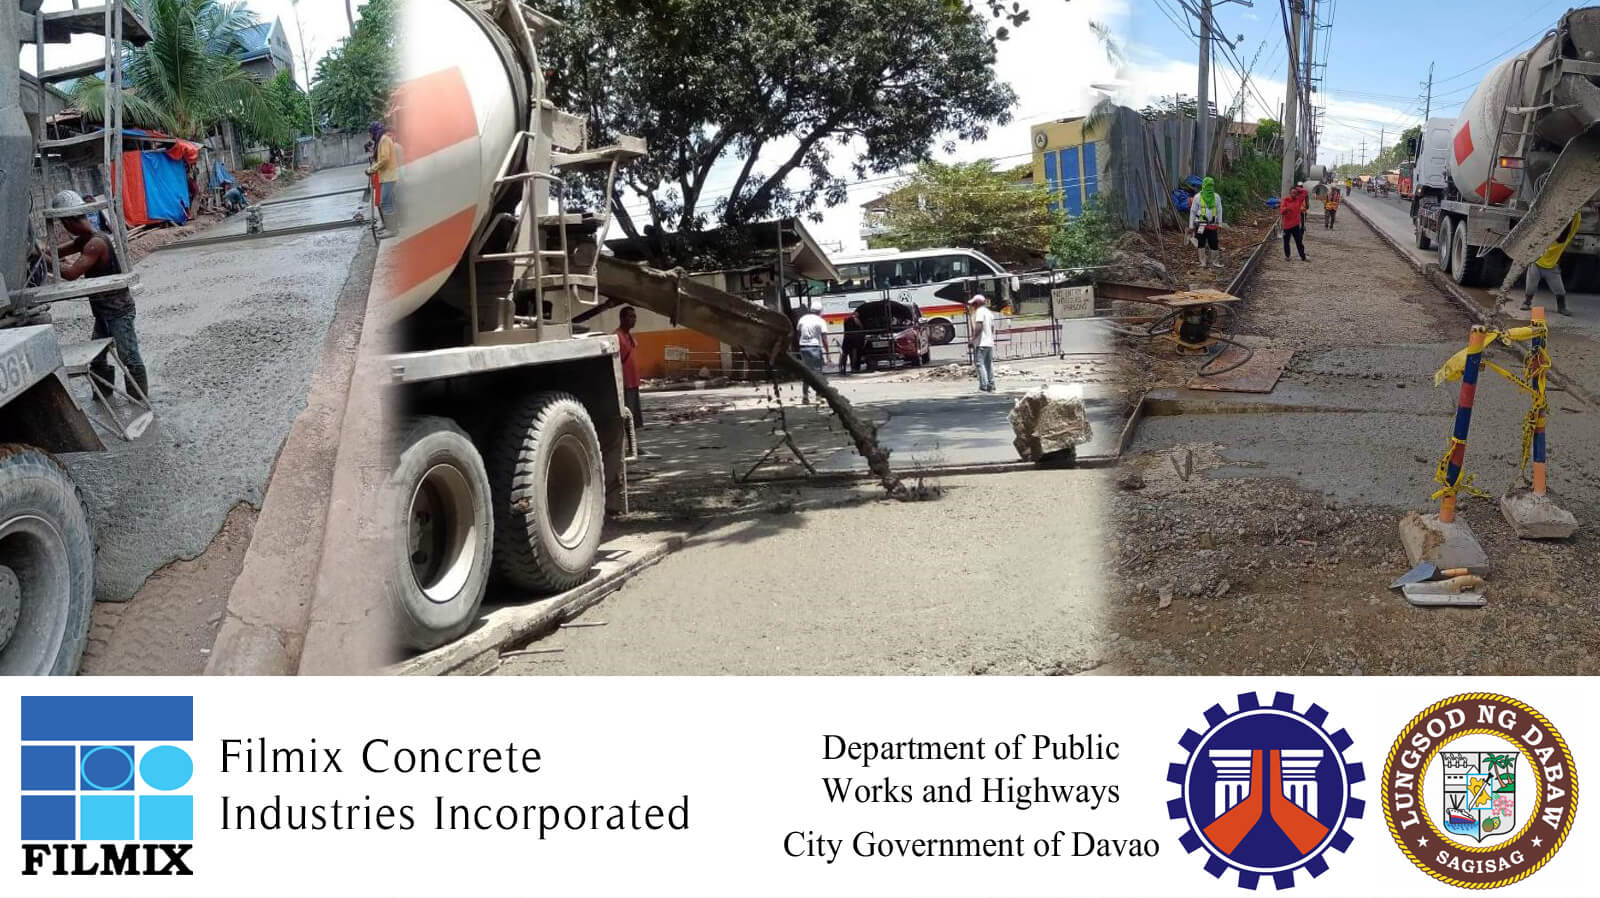 Buy premium quality ready mix concrete in Davao from Filmix.